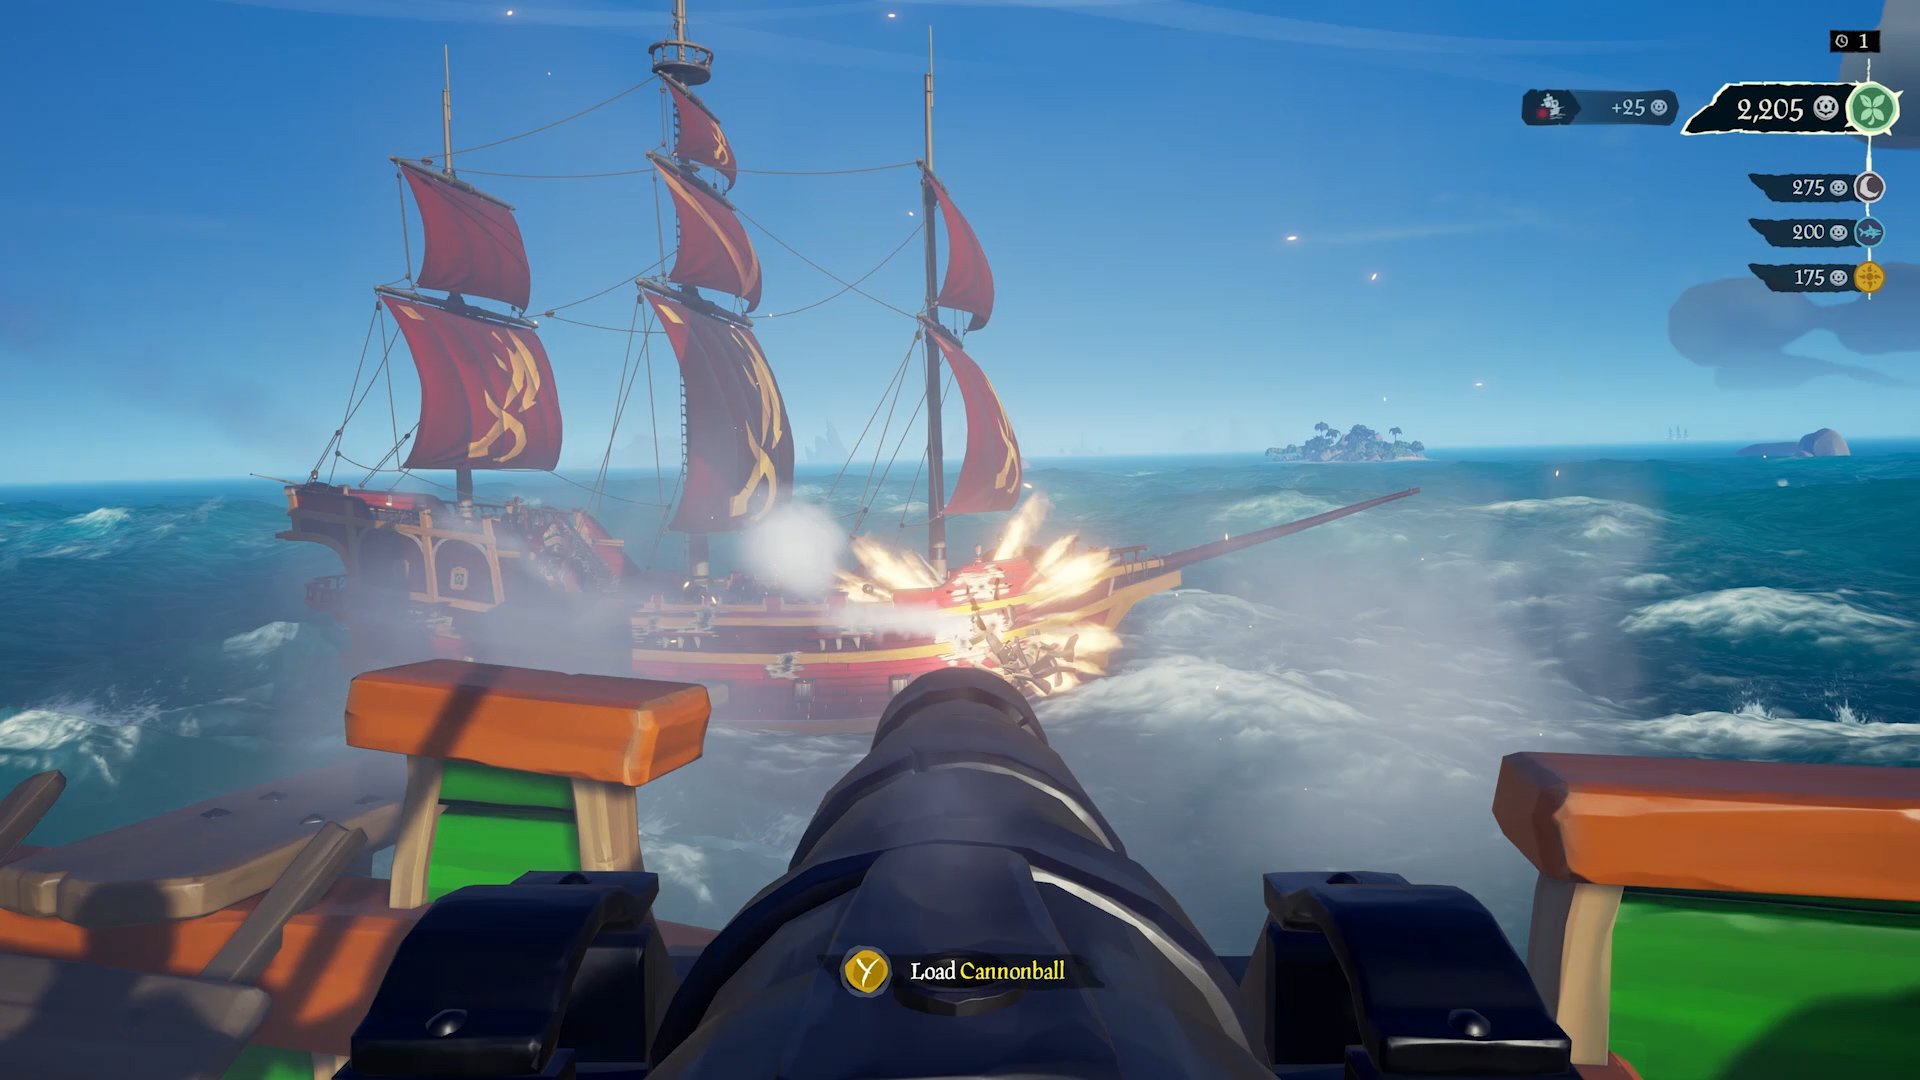 sea of thieves most improved game 2019